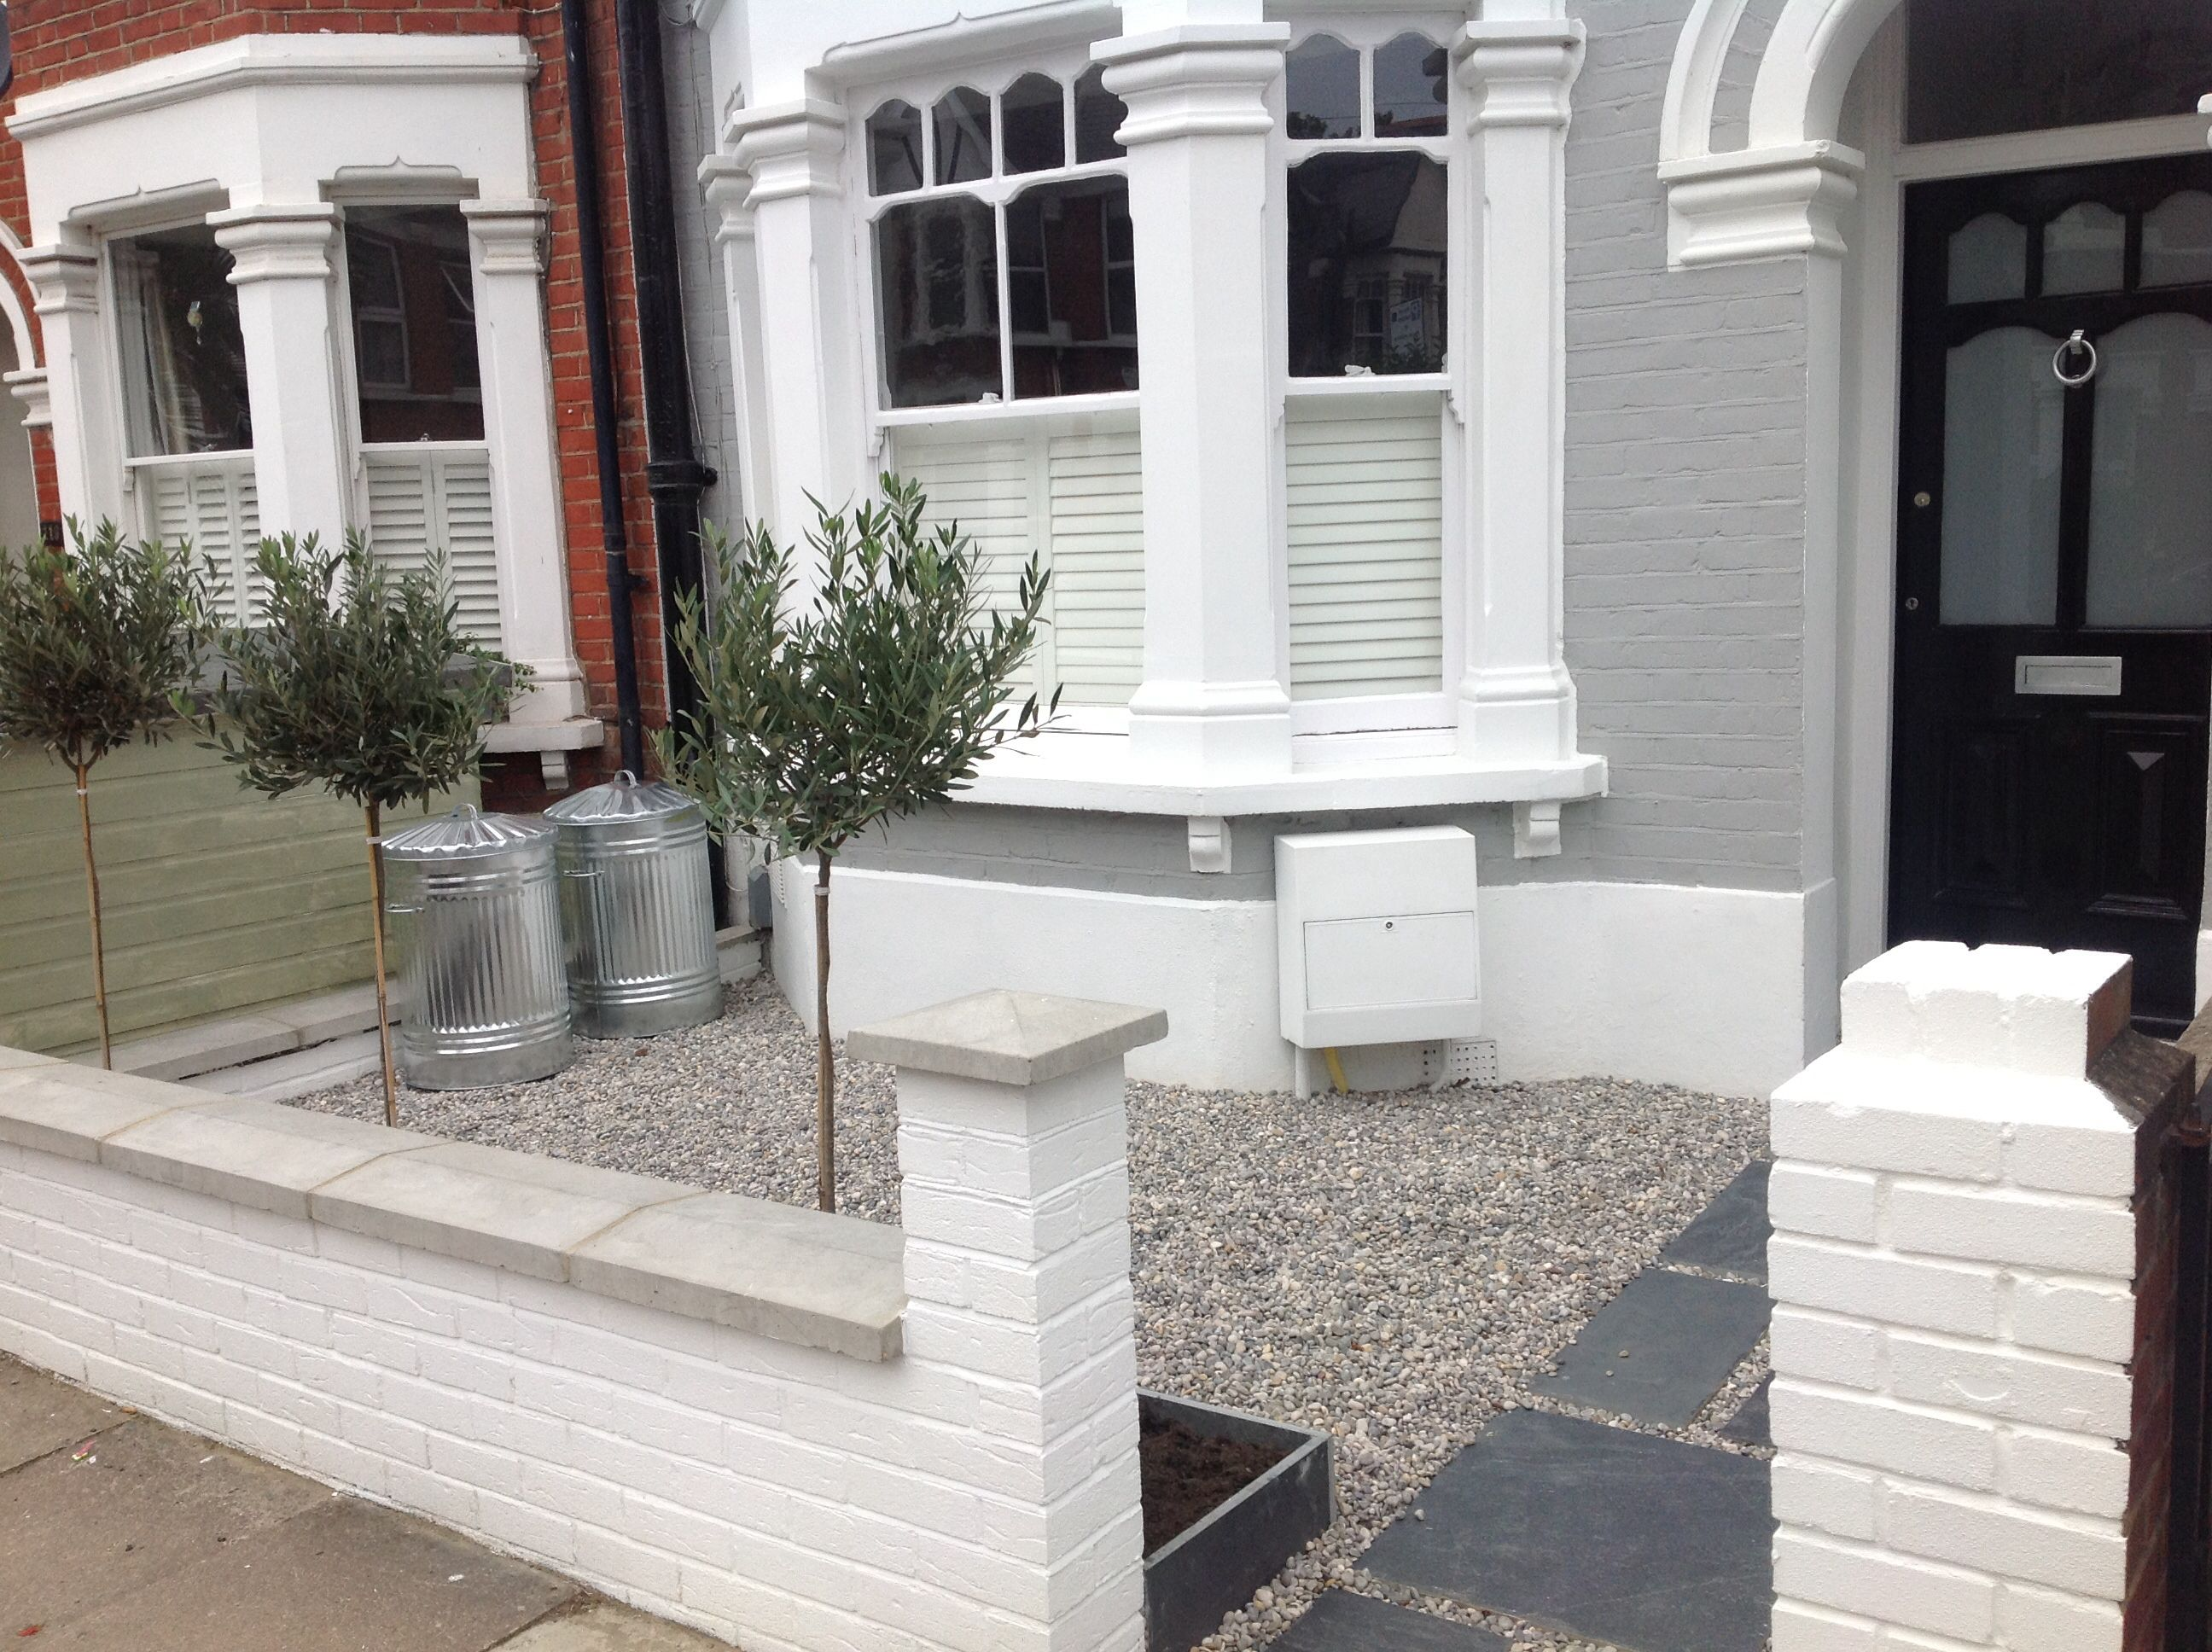 Front Garden Paving And Gravel Theme Love The White Paint On